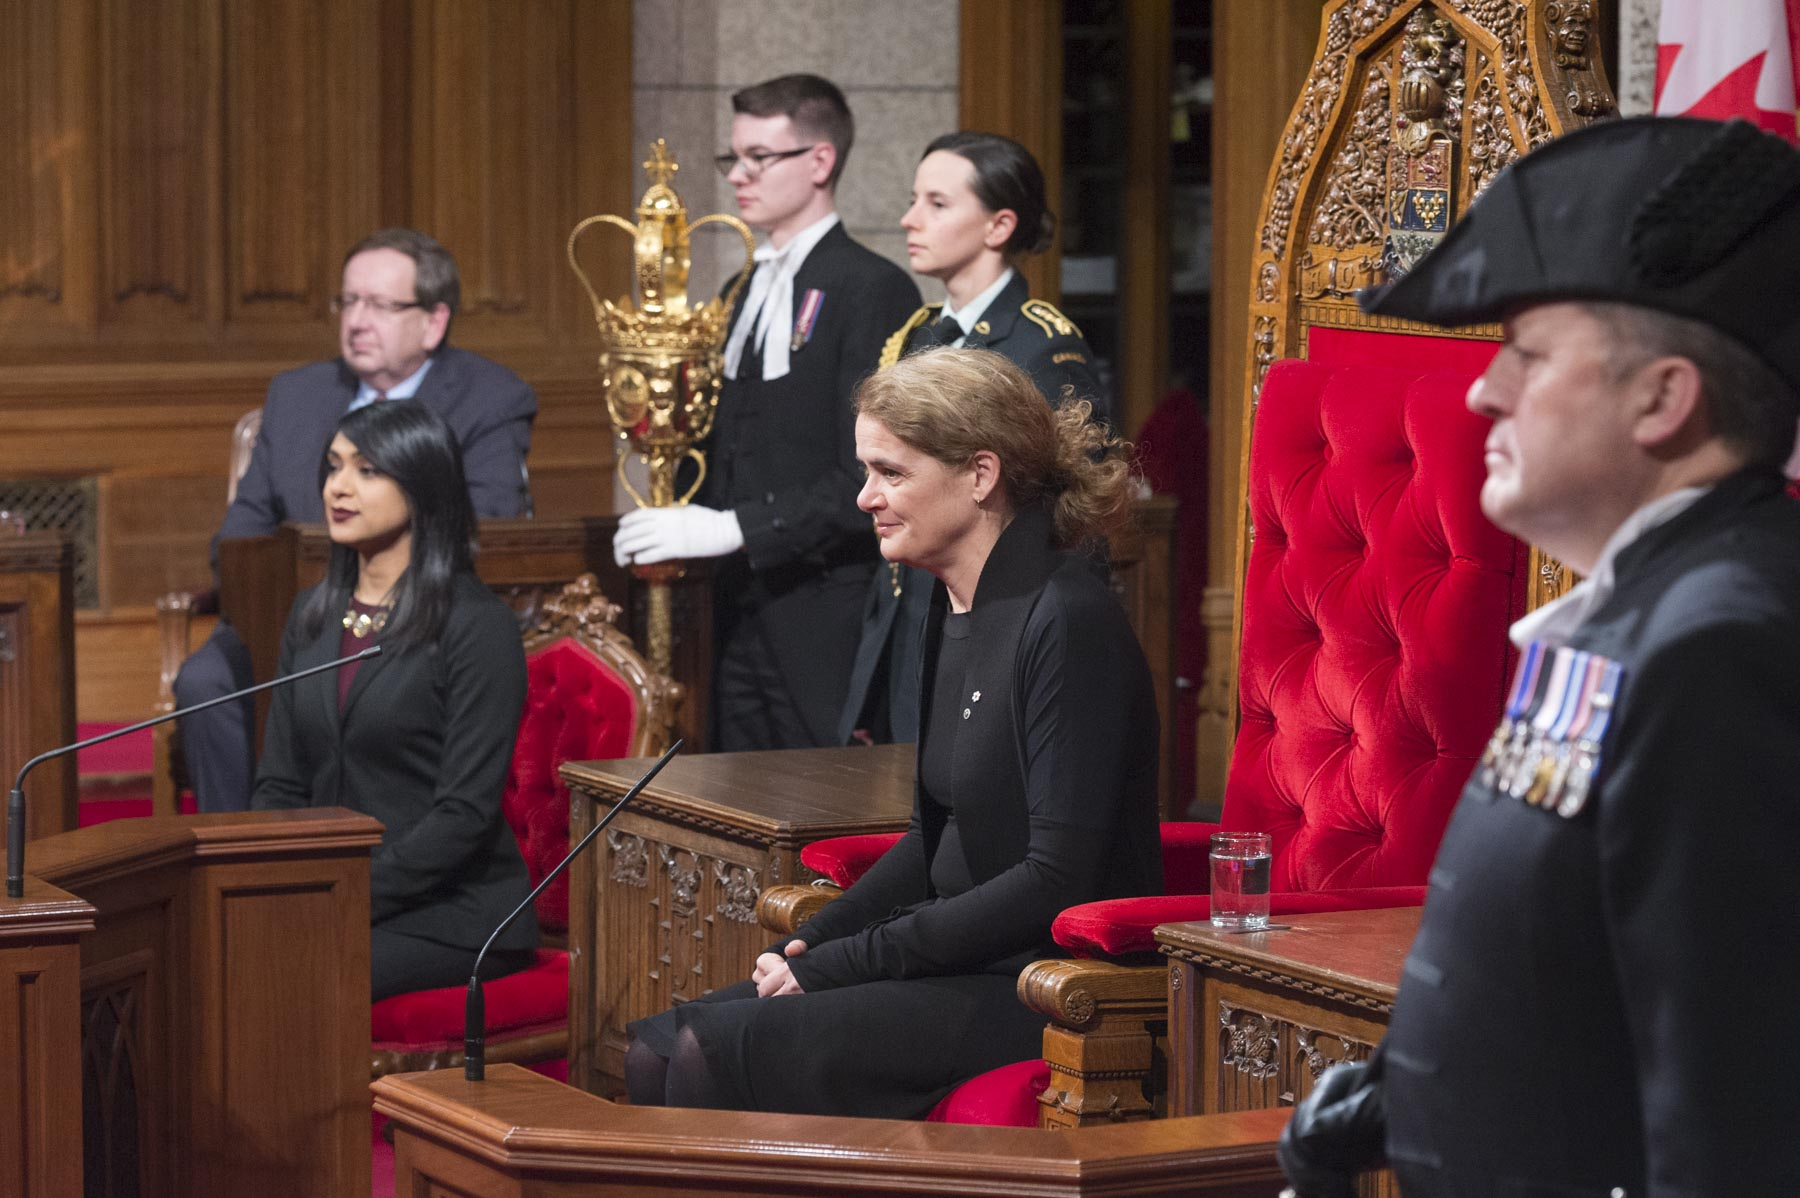 Royal Assent is granted by a representative of the Crown to approve a bill passed by the House of Commons and the Senate, making it into an Act of Parliament.